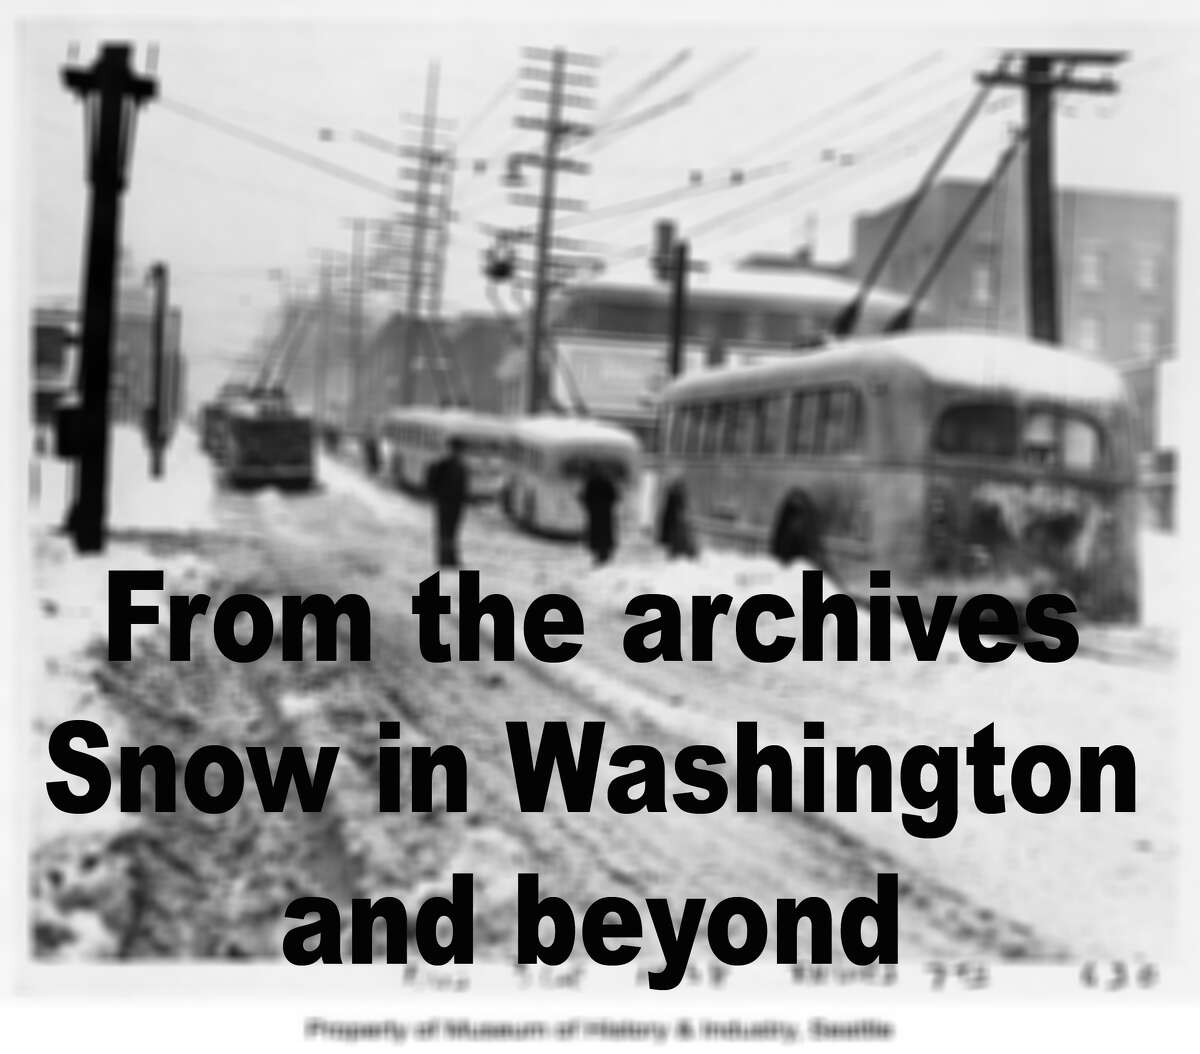 Washington snow and skiing from yesteryear.